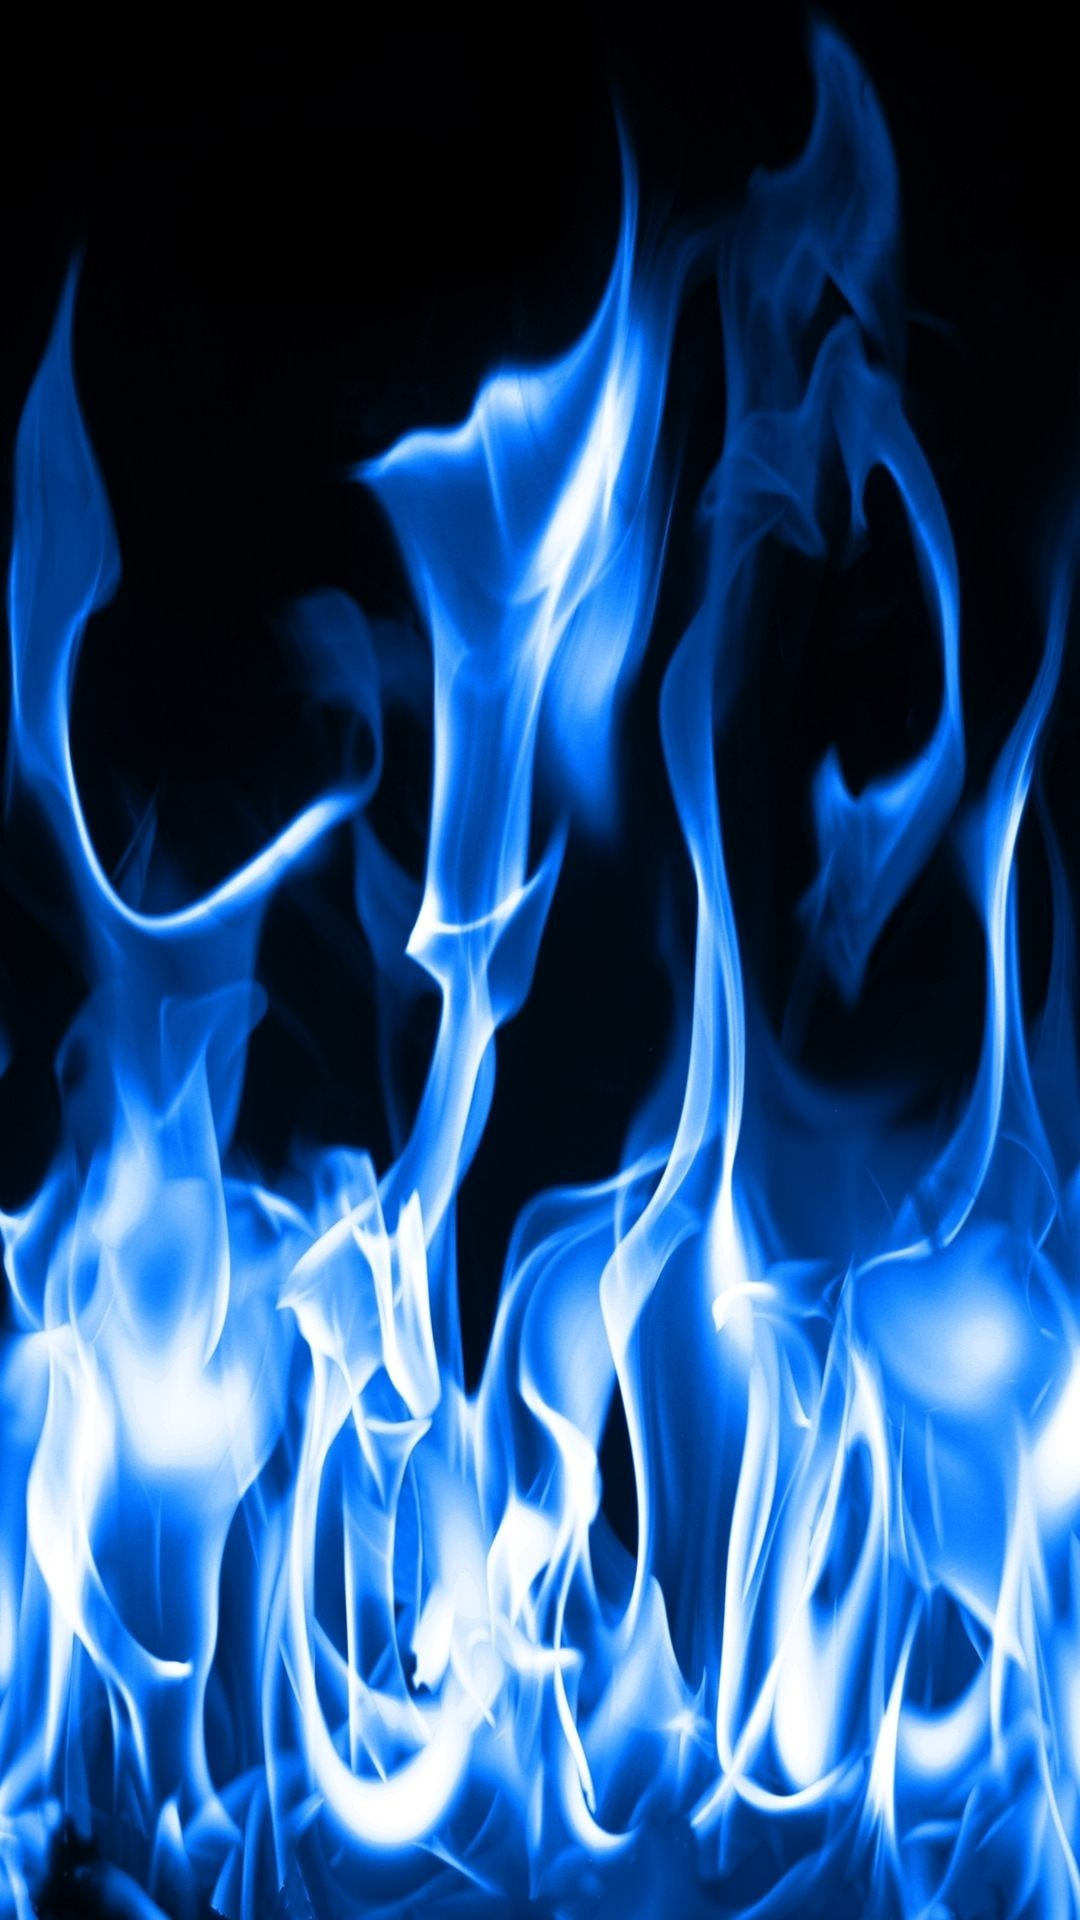 Abstract Flames iPhone 6 Plus Wallpapers – blue, fire iPhone 6 .